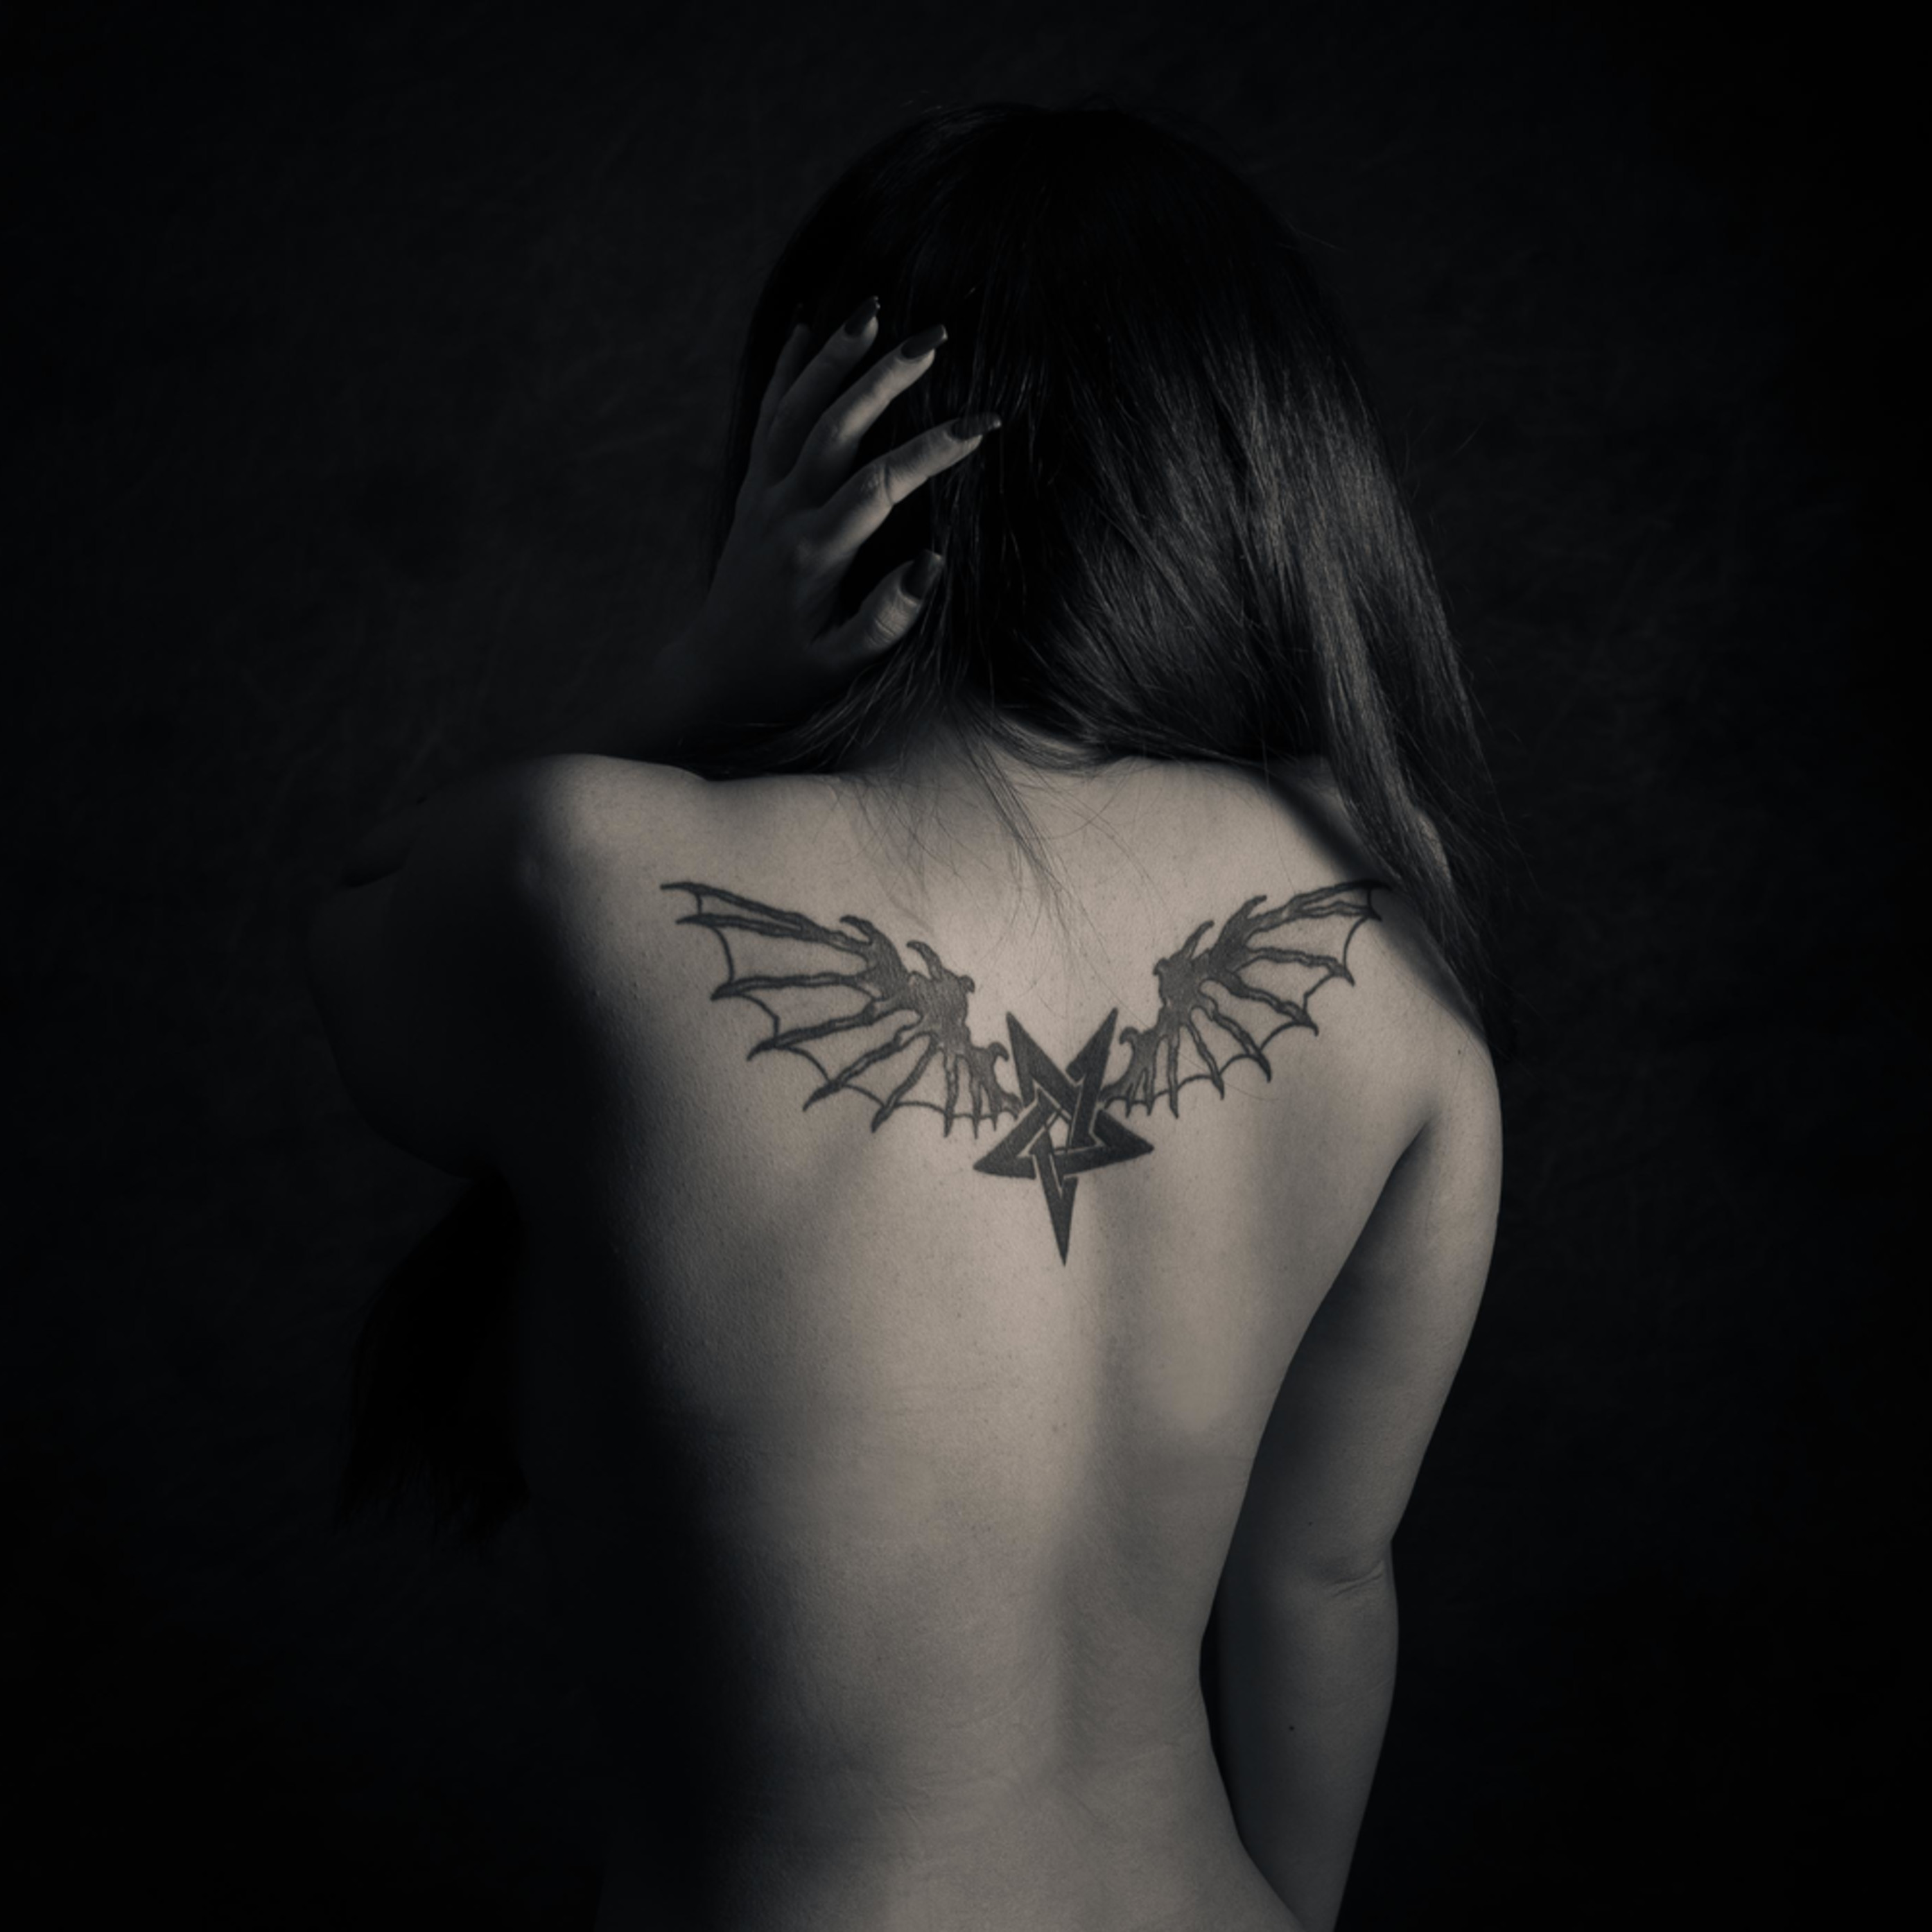 Winged tattoo xeacez